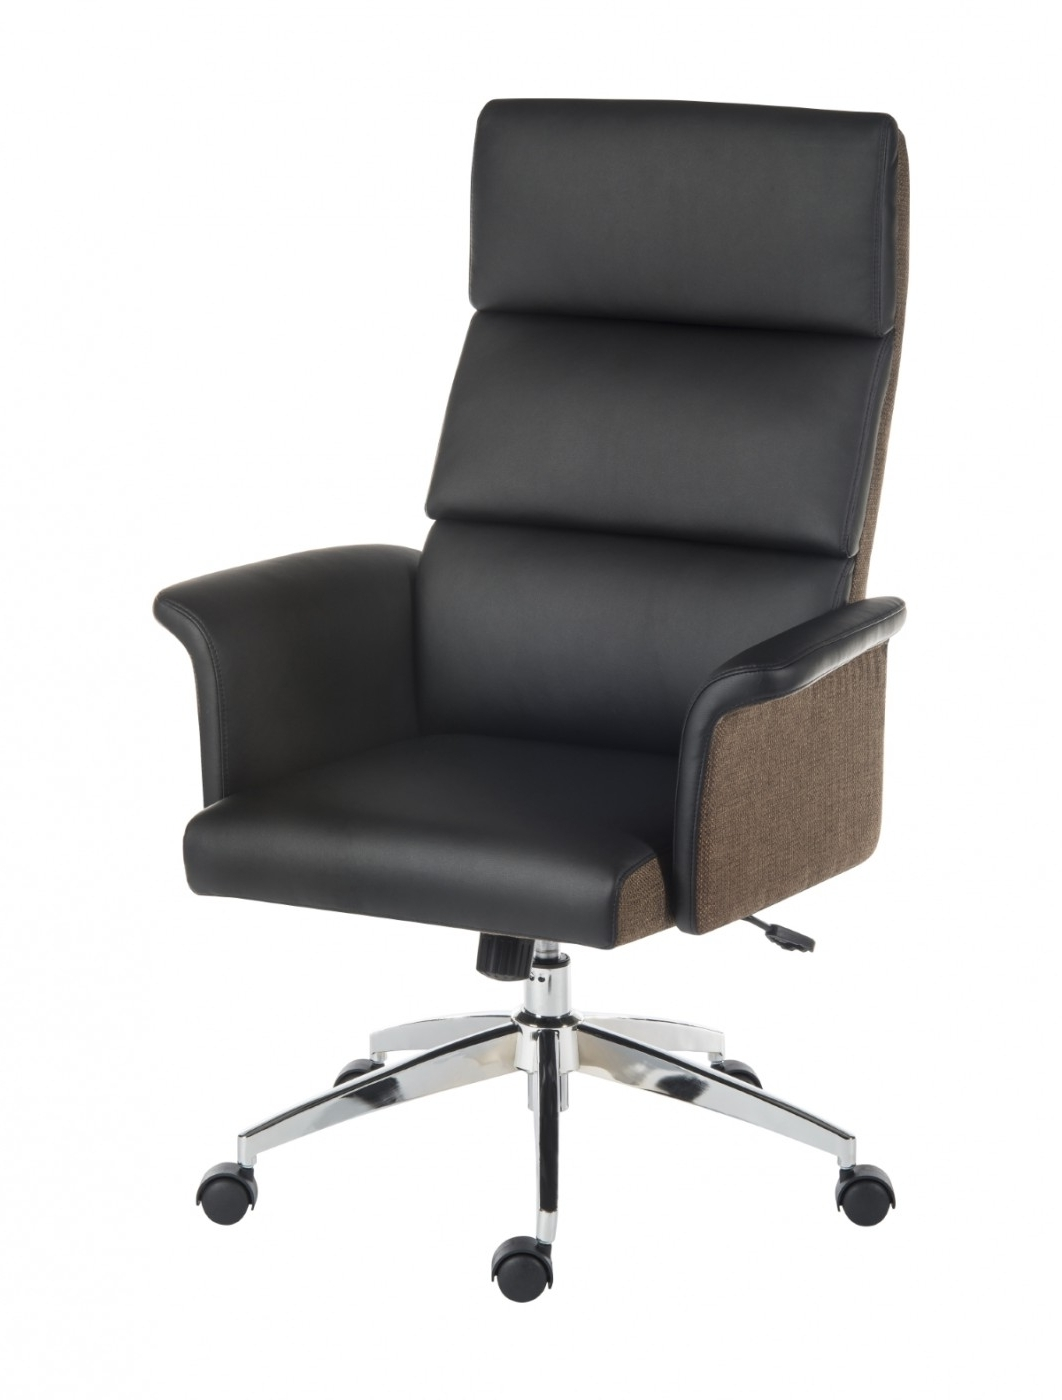 Executive Office Chairs Pertaining To Latest Office Chairs – Teknik Elegance High Back Executive Office Chair (View 5 of 20)